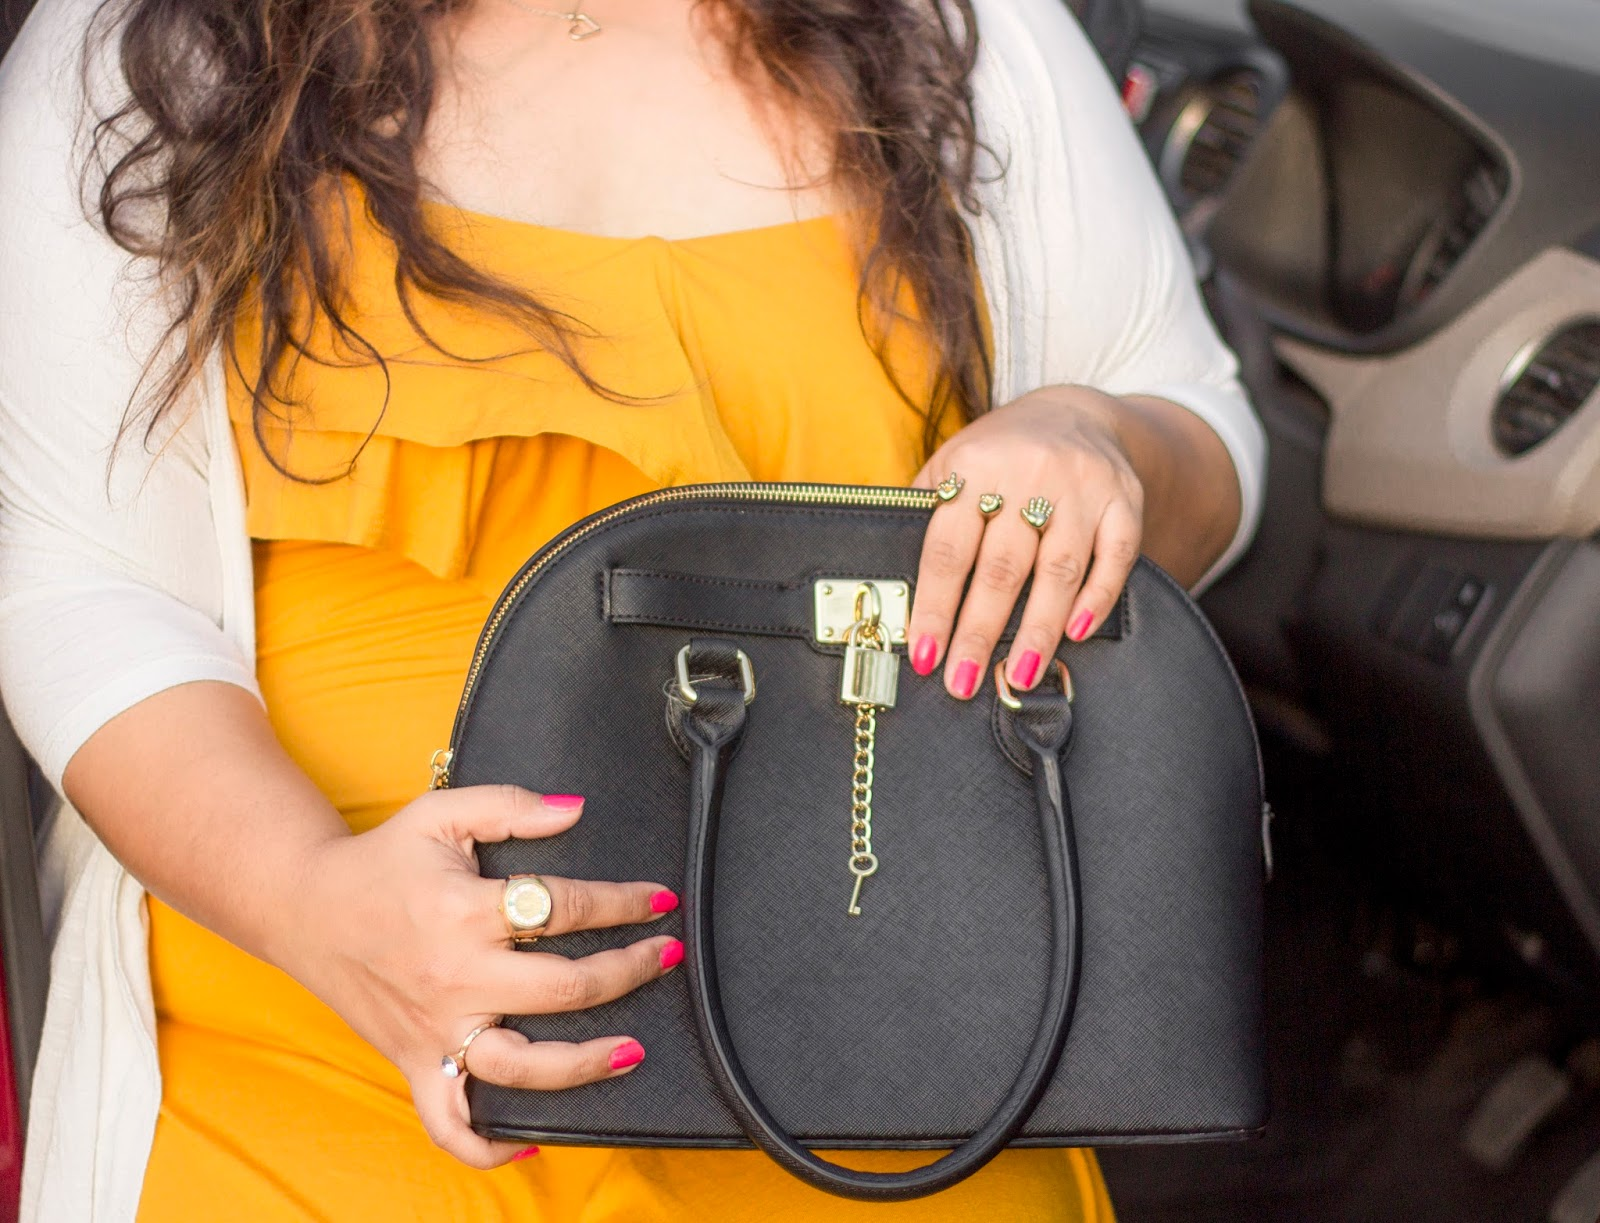 aldo black bag pink nails gold rings yellow dress